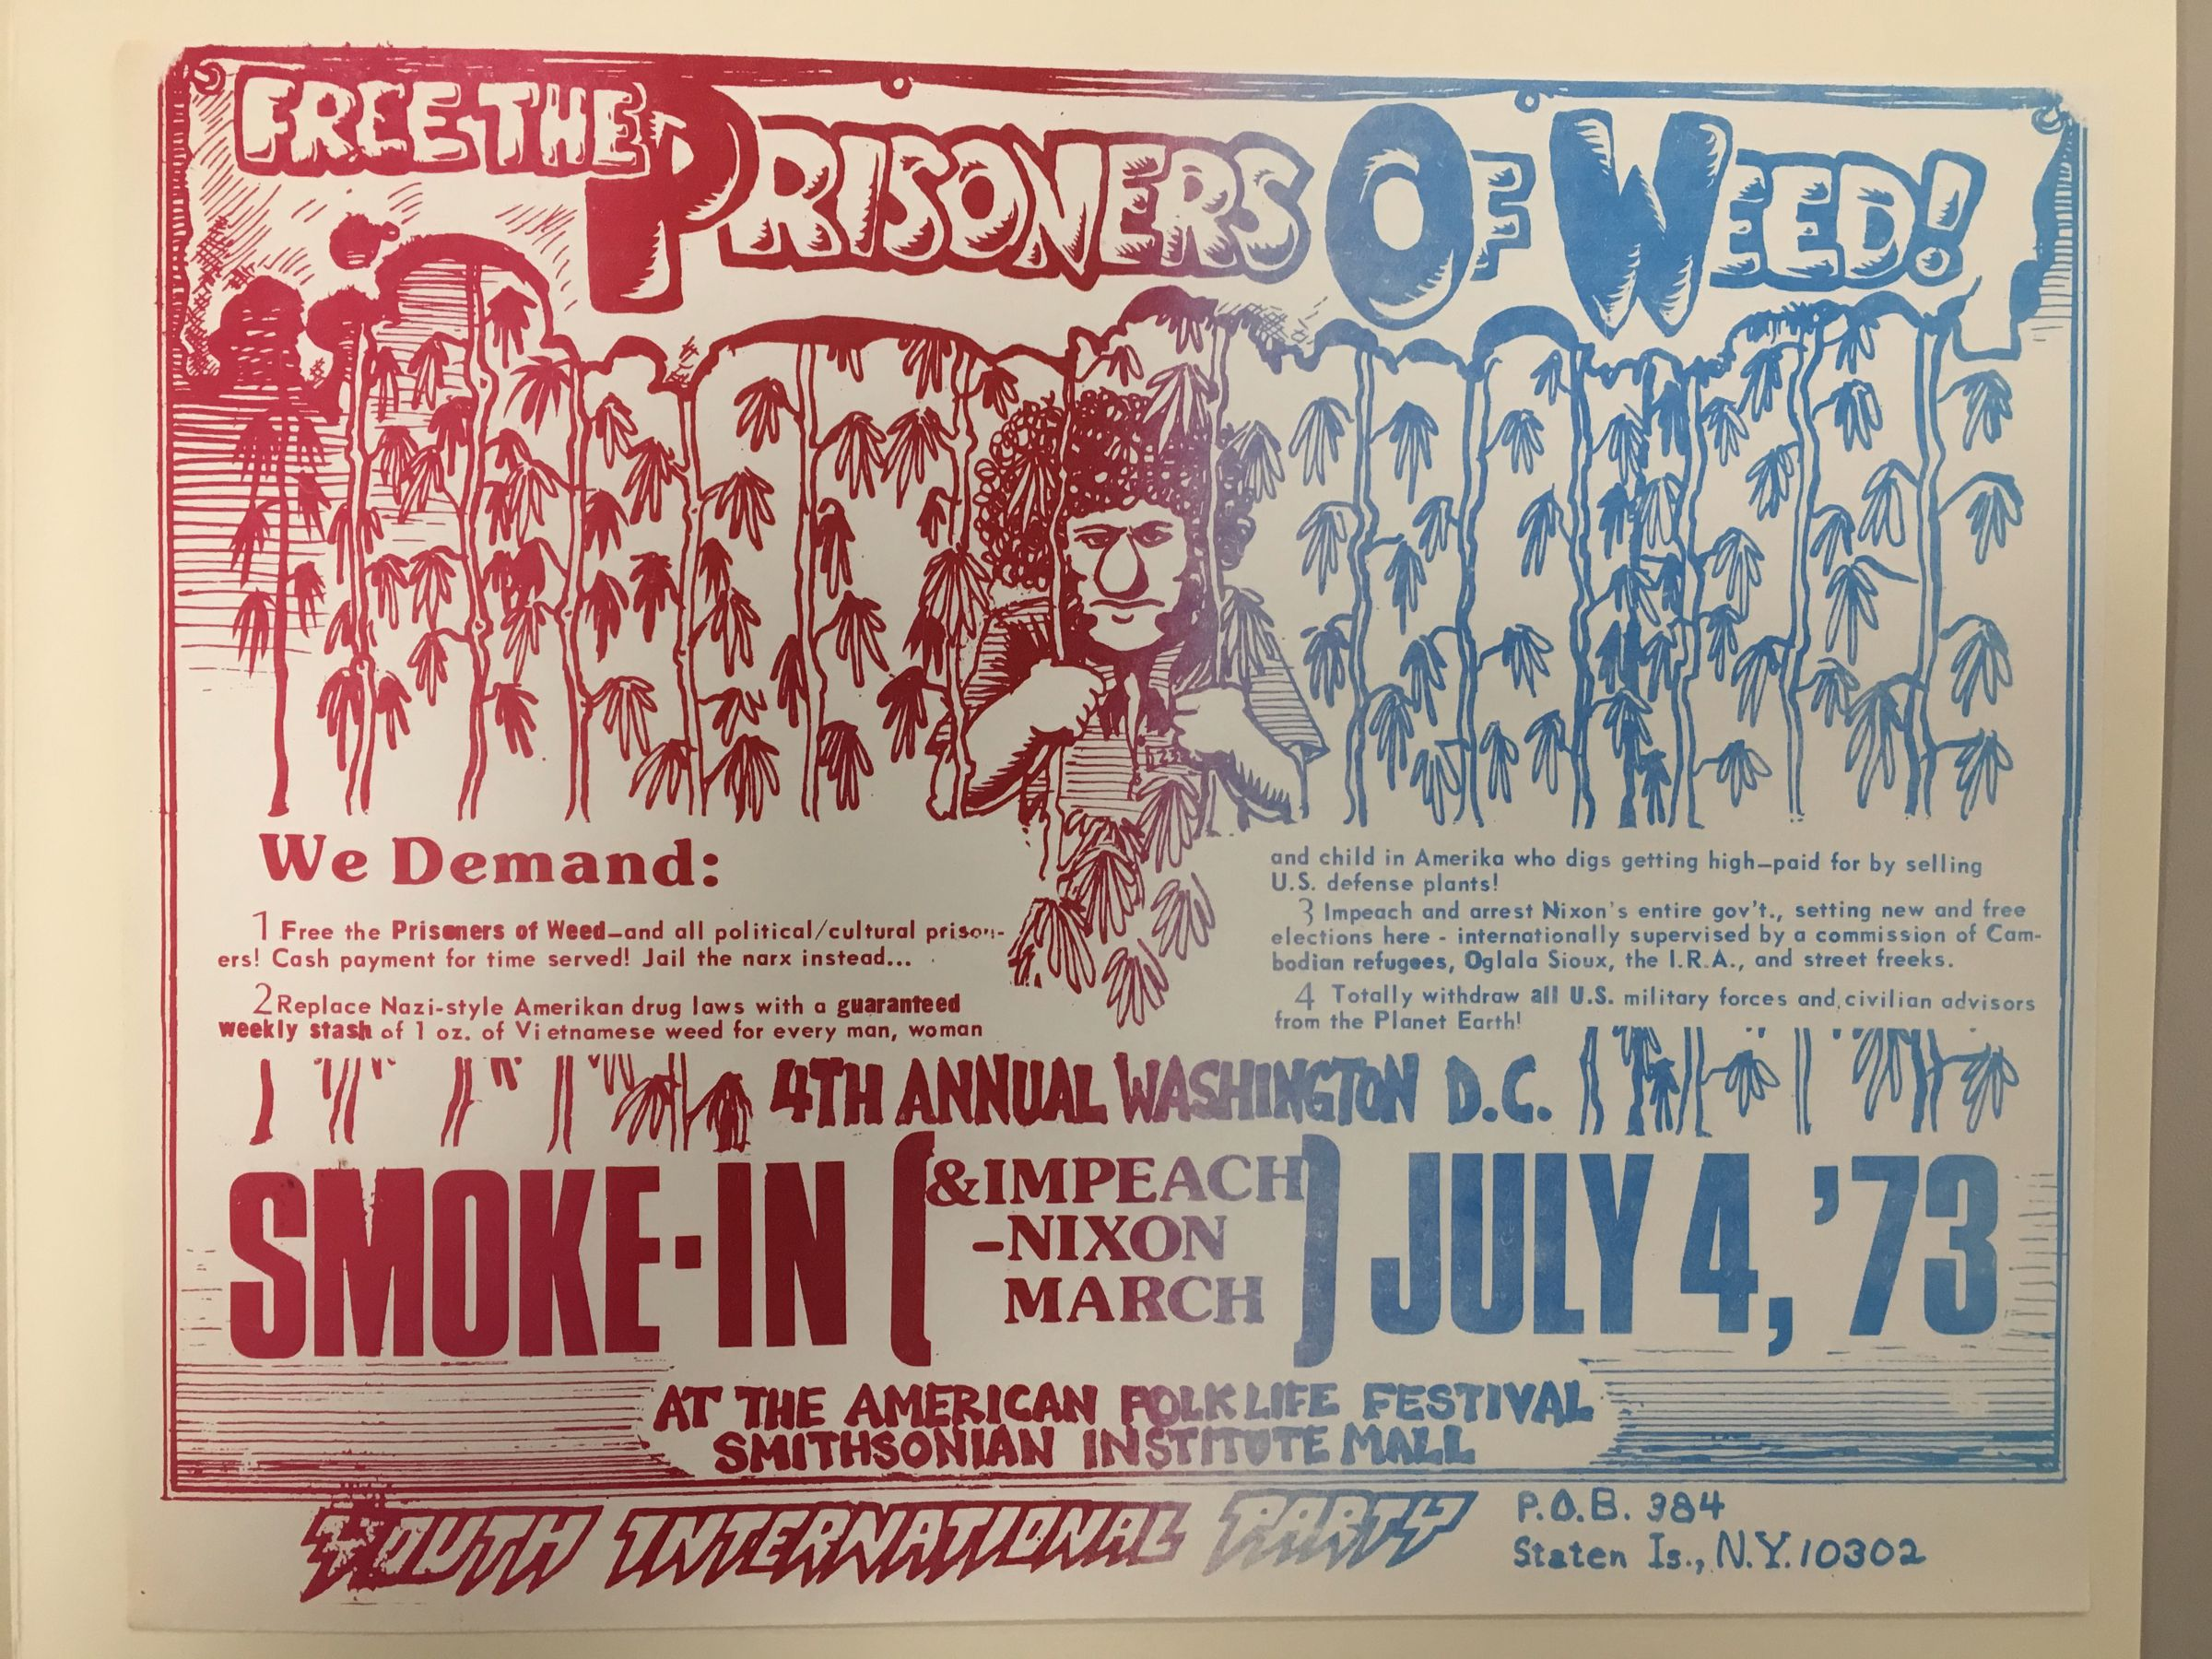 Free the prisoners of weed! 4th annual Washington D.C. smoke-in & impeach Nixon march, Youth International Party : poster, 1973